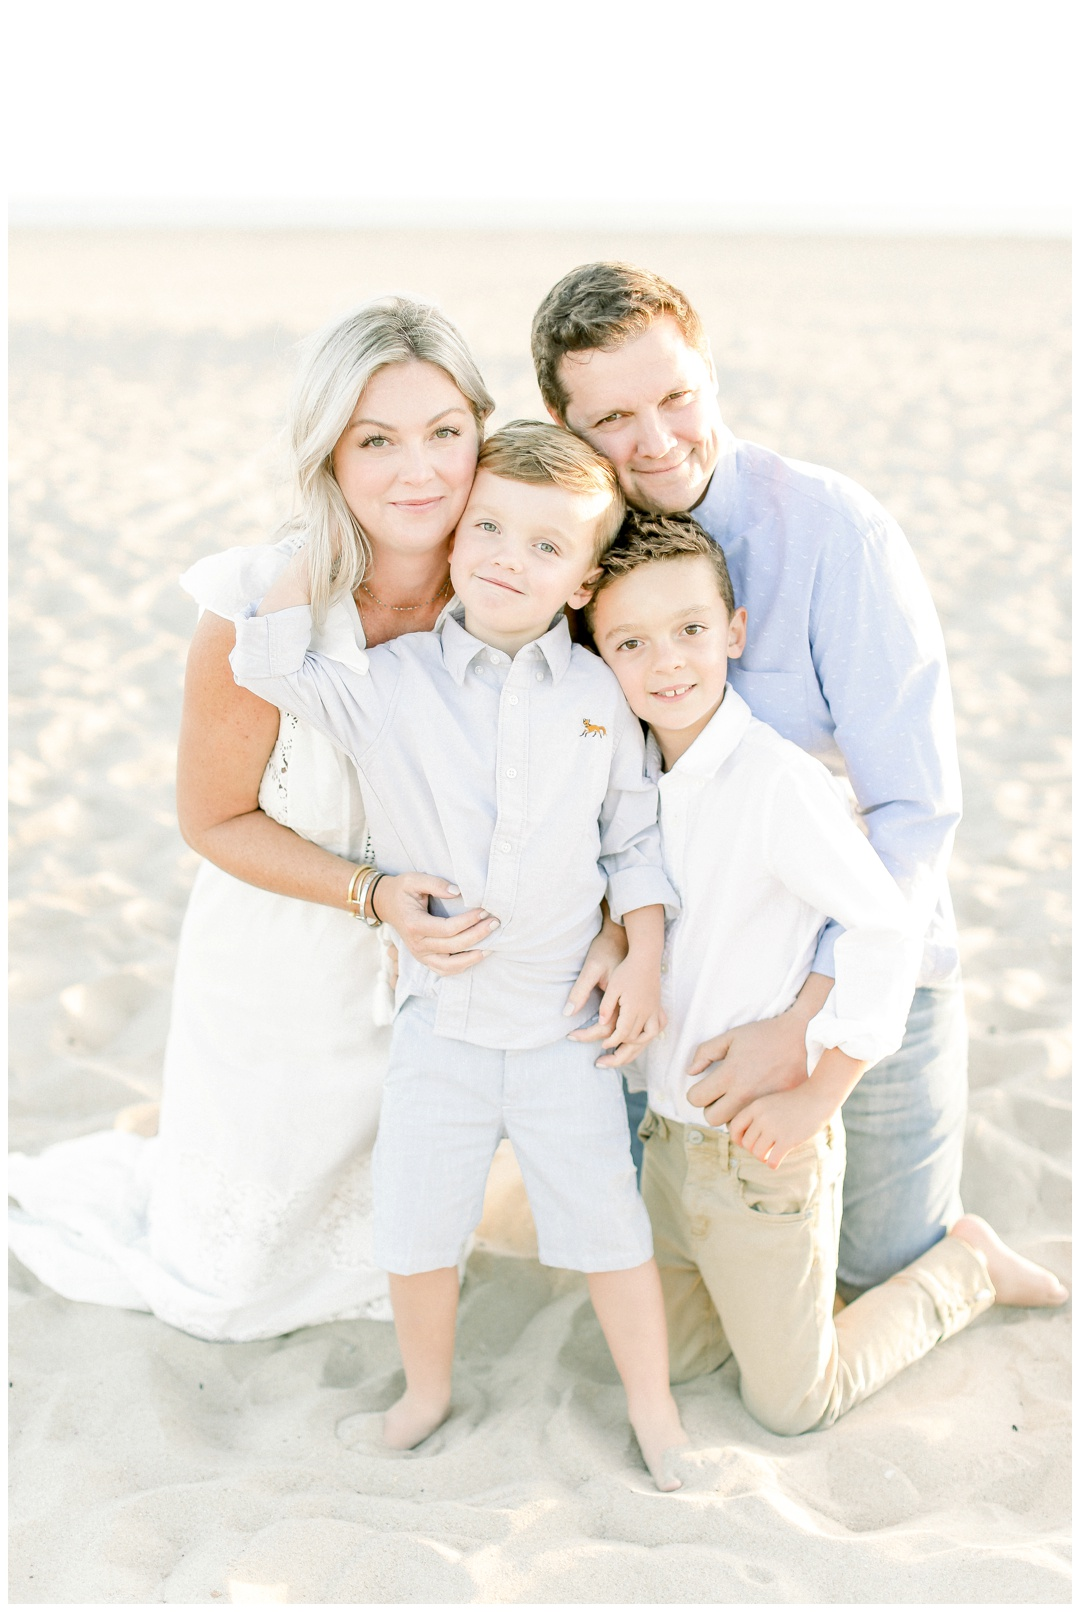 Newport_Beach_Family_Photographer_Newport_Beach_Newborn_Photographer_Orange_County_Family_Photographer_Cori_Kleckner_Photography_Huntington_Beach_San_Clemente_Family_Session_Photography__2338.jpg